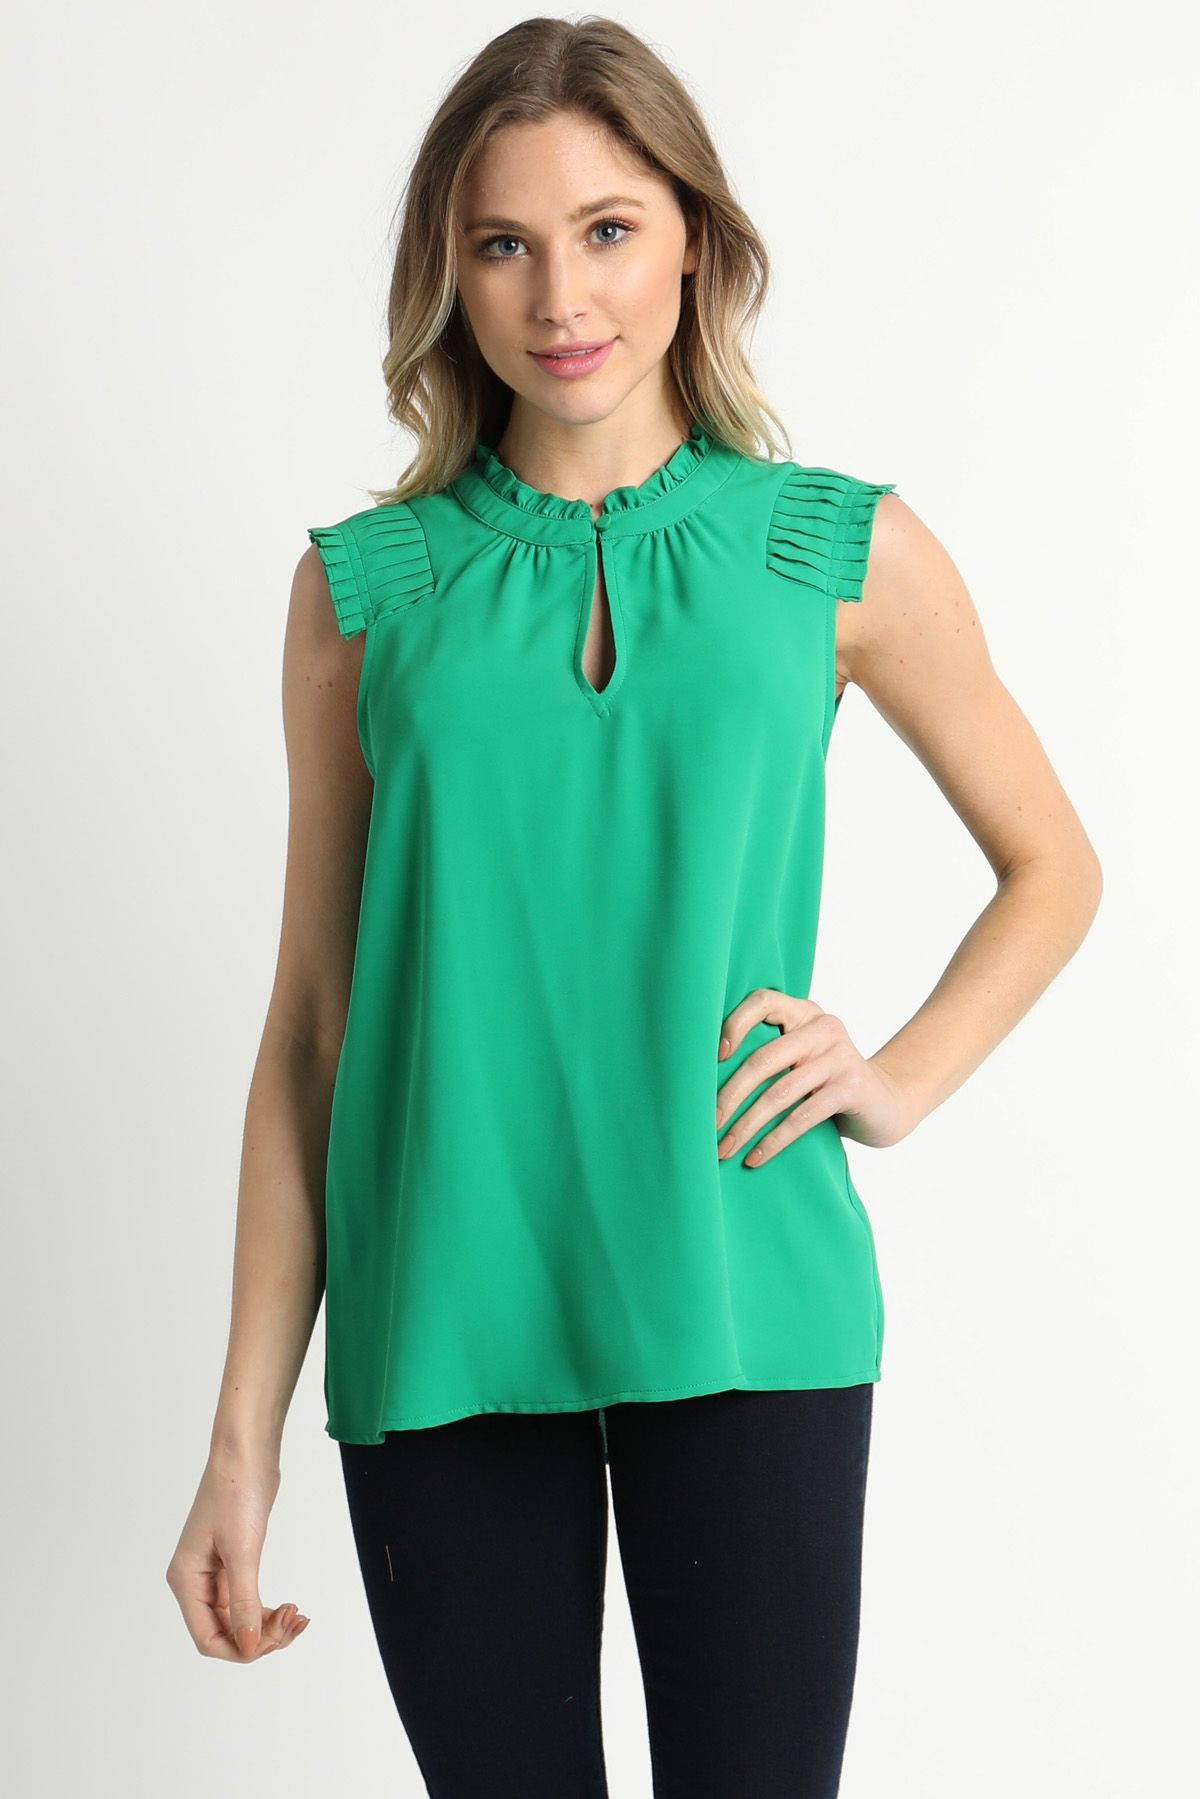 Pin Tucked Shoulder Ruffle Blouse